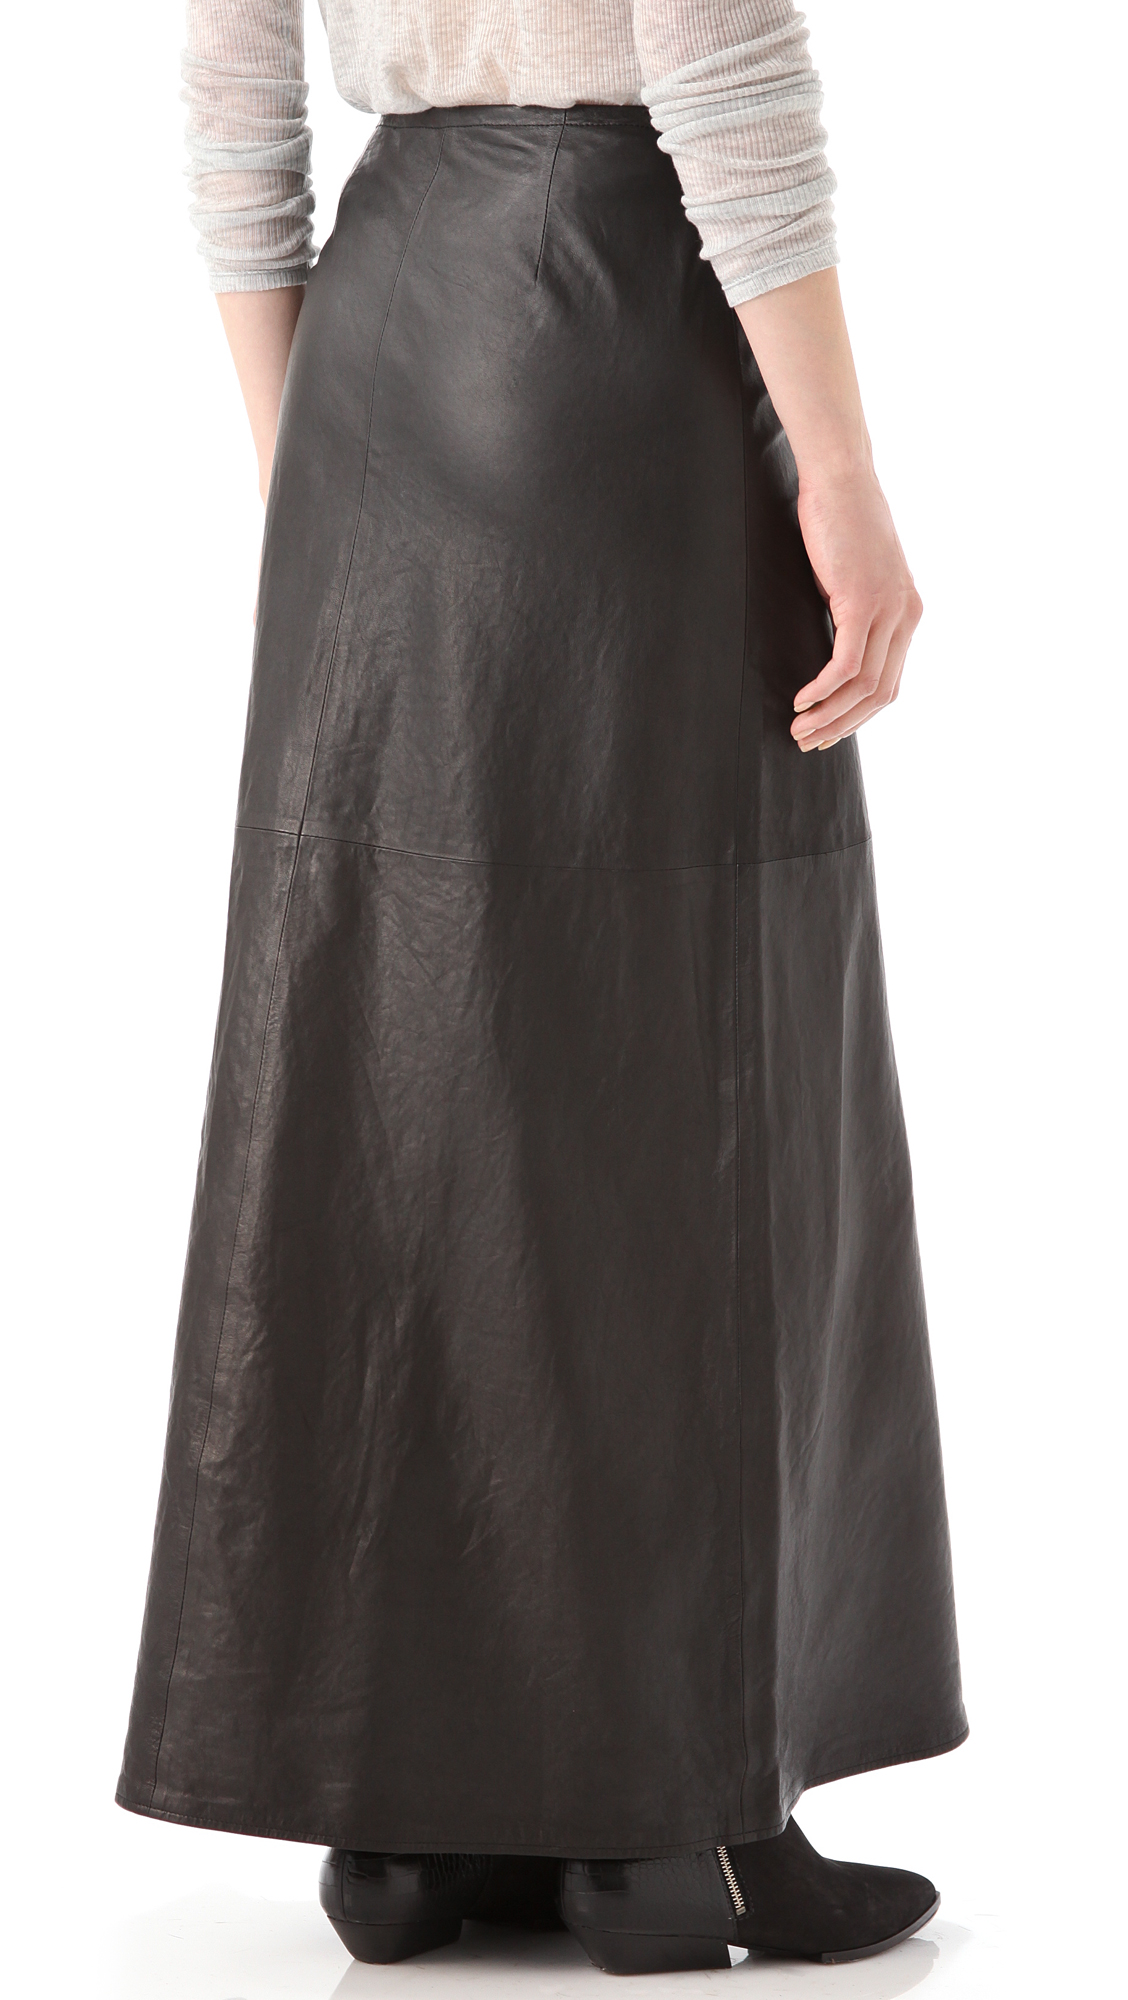 4104fd4c1383a2 Gallery. Previously sold at: Shopbop · Women's Black Leather Skirts